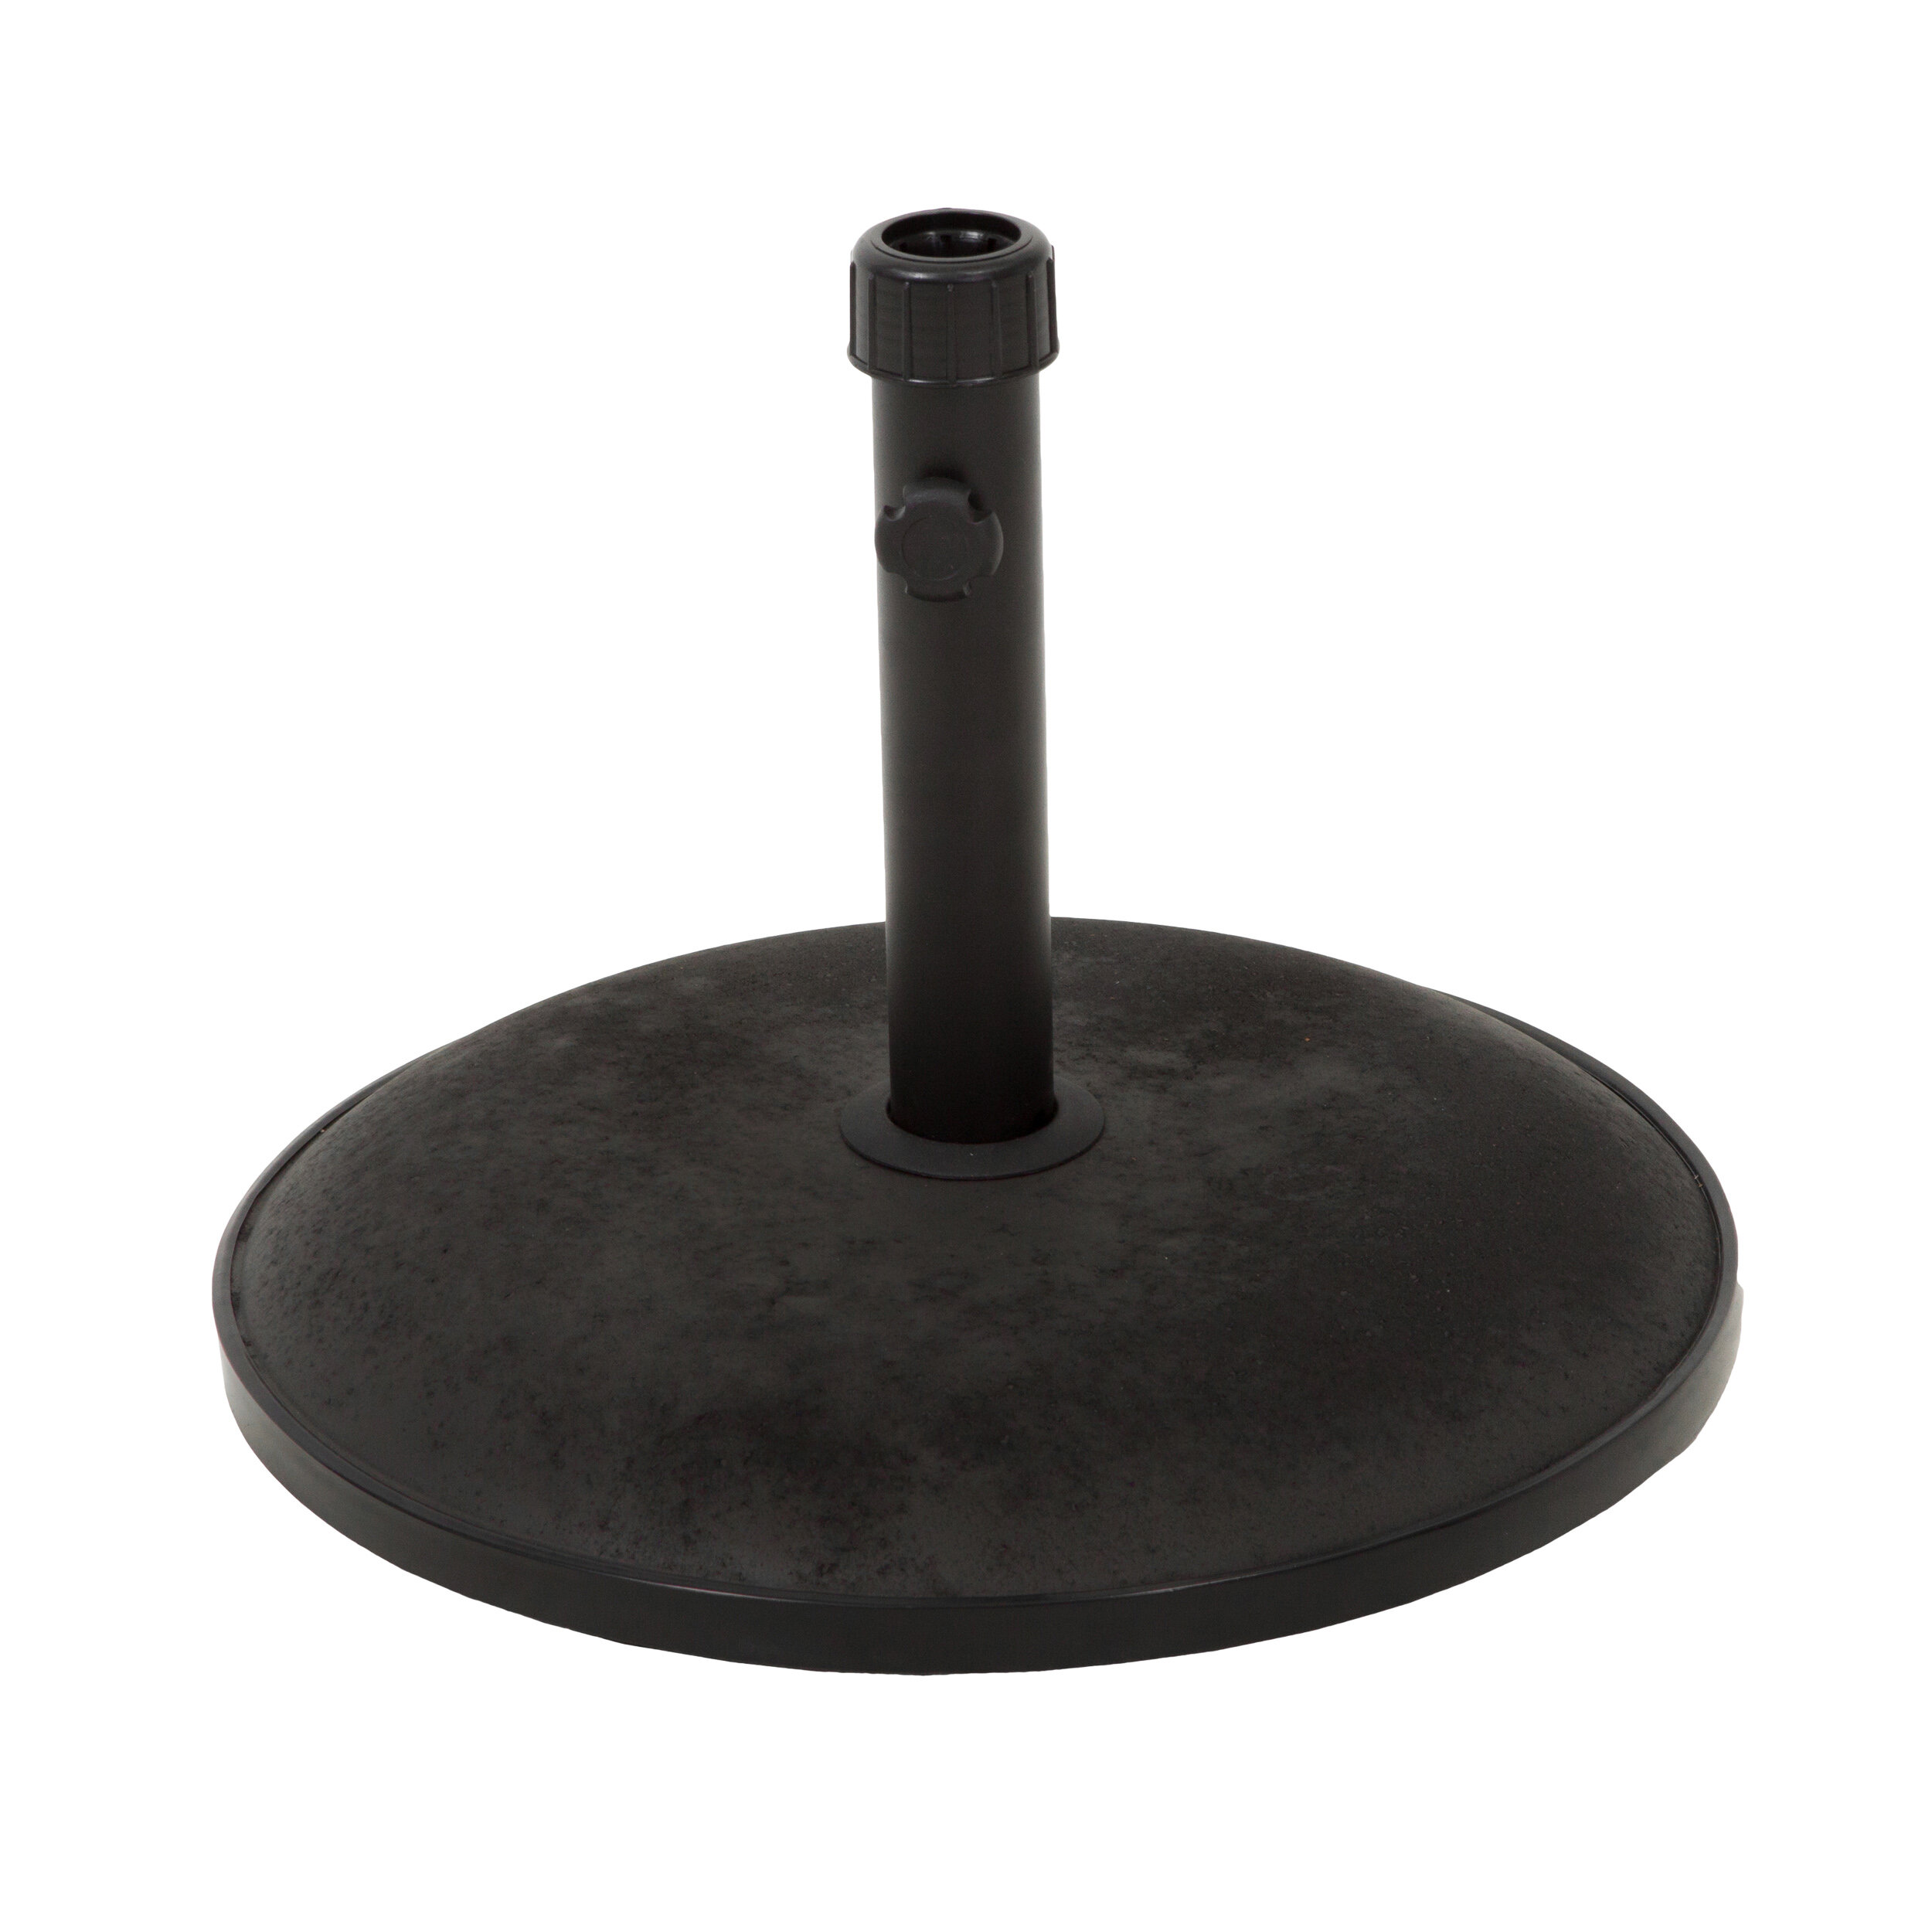 Patio Umbrella Stands & Bases You ll Love